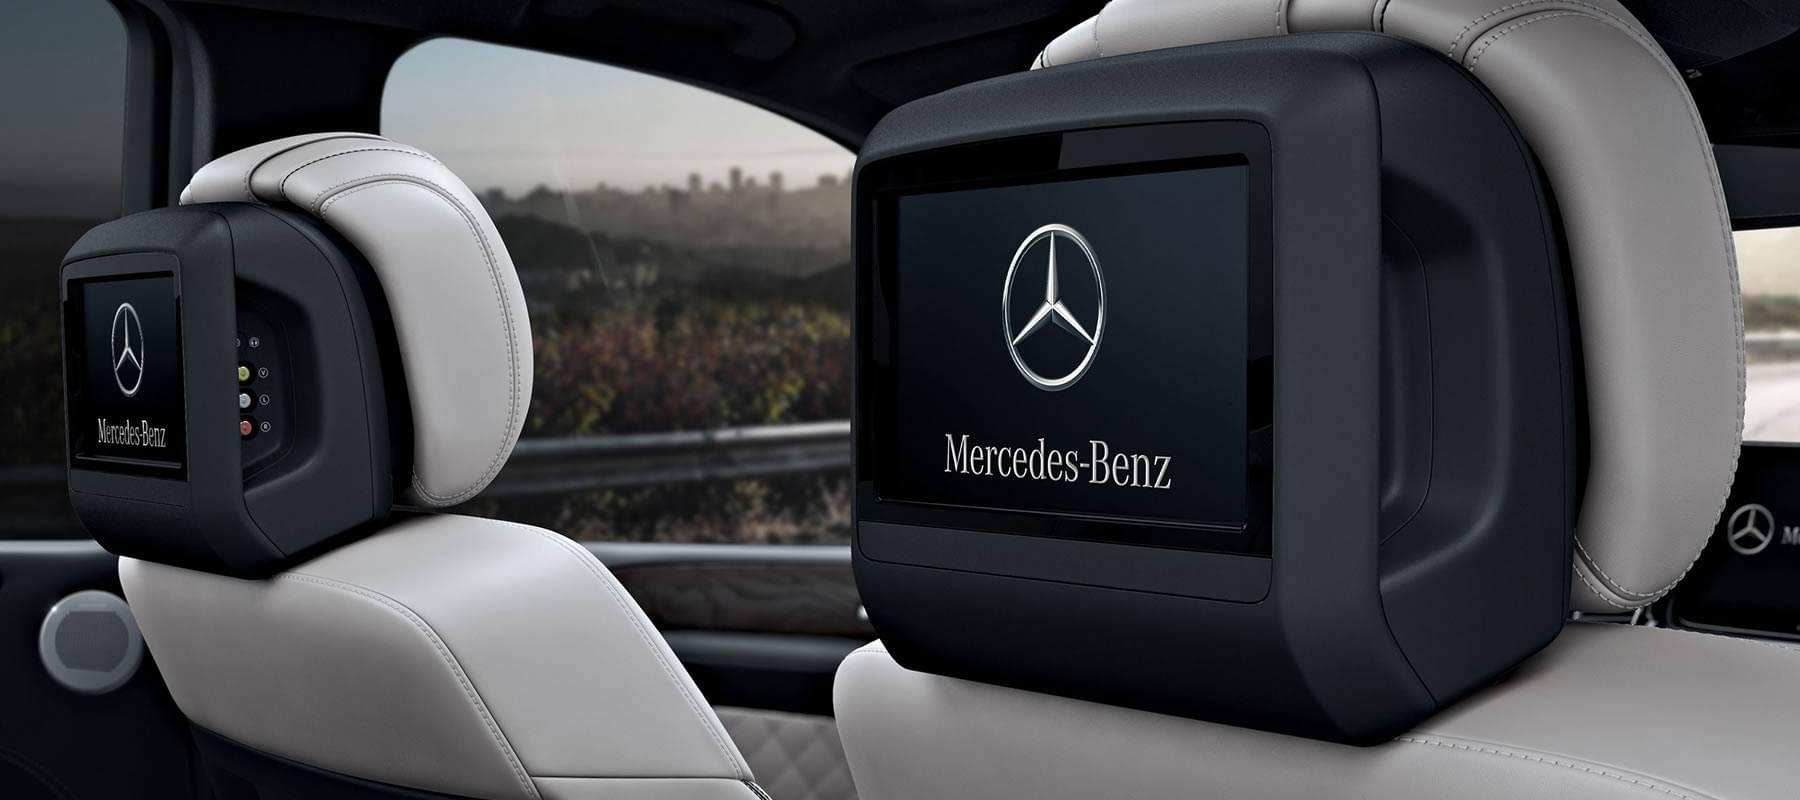 New technology found in mercedes benz models mercedes for Mercedes benz of baton rouge